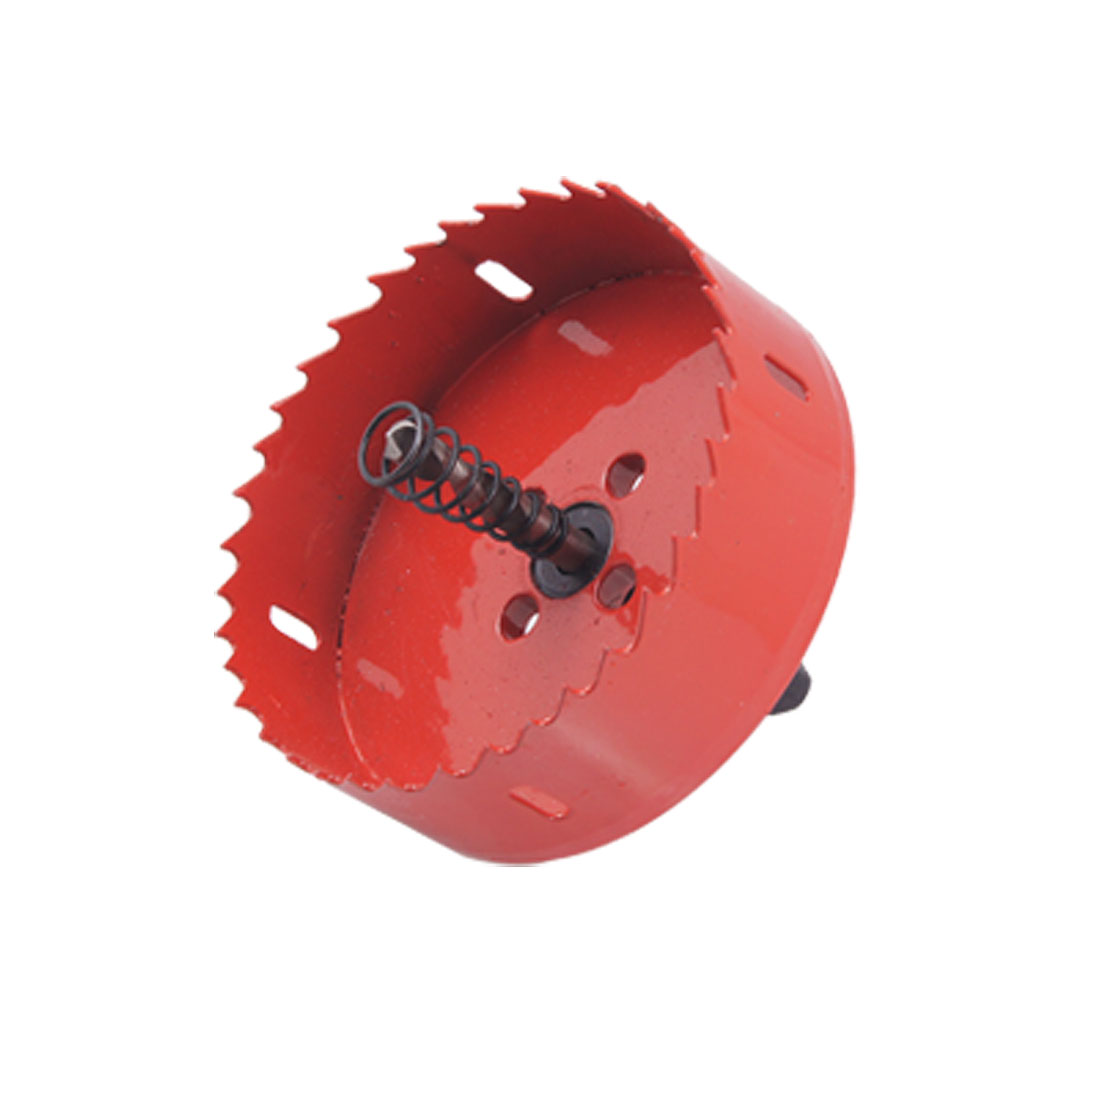 Hole Cutting Cutter Tool 90mm Diameter Bimetal Red Holesaw